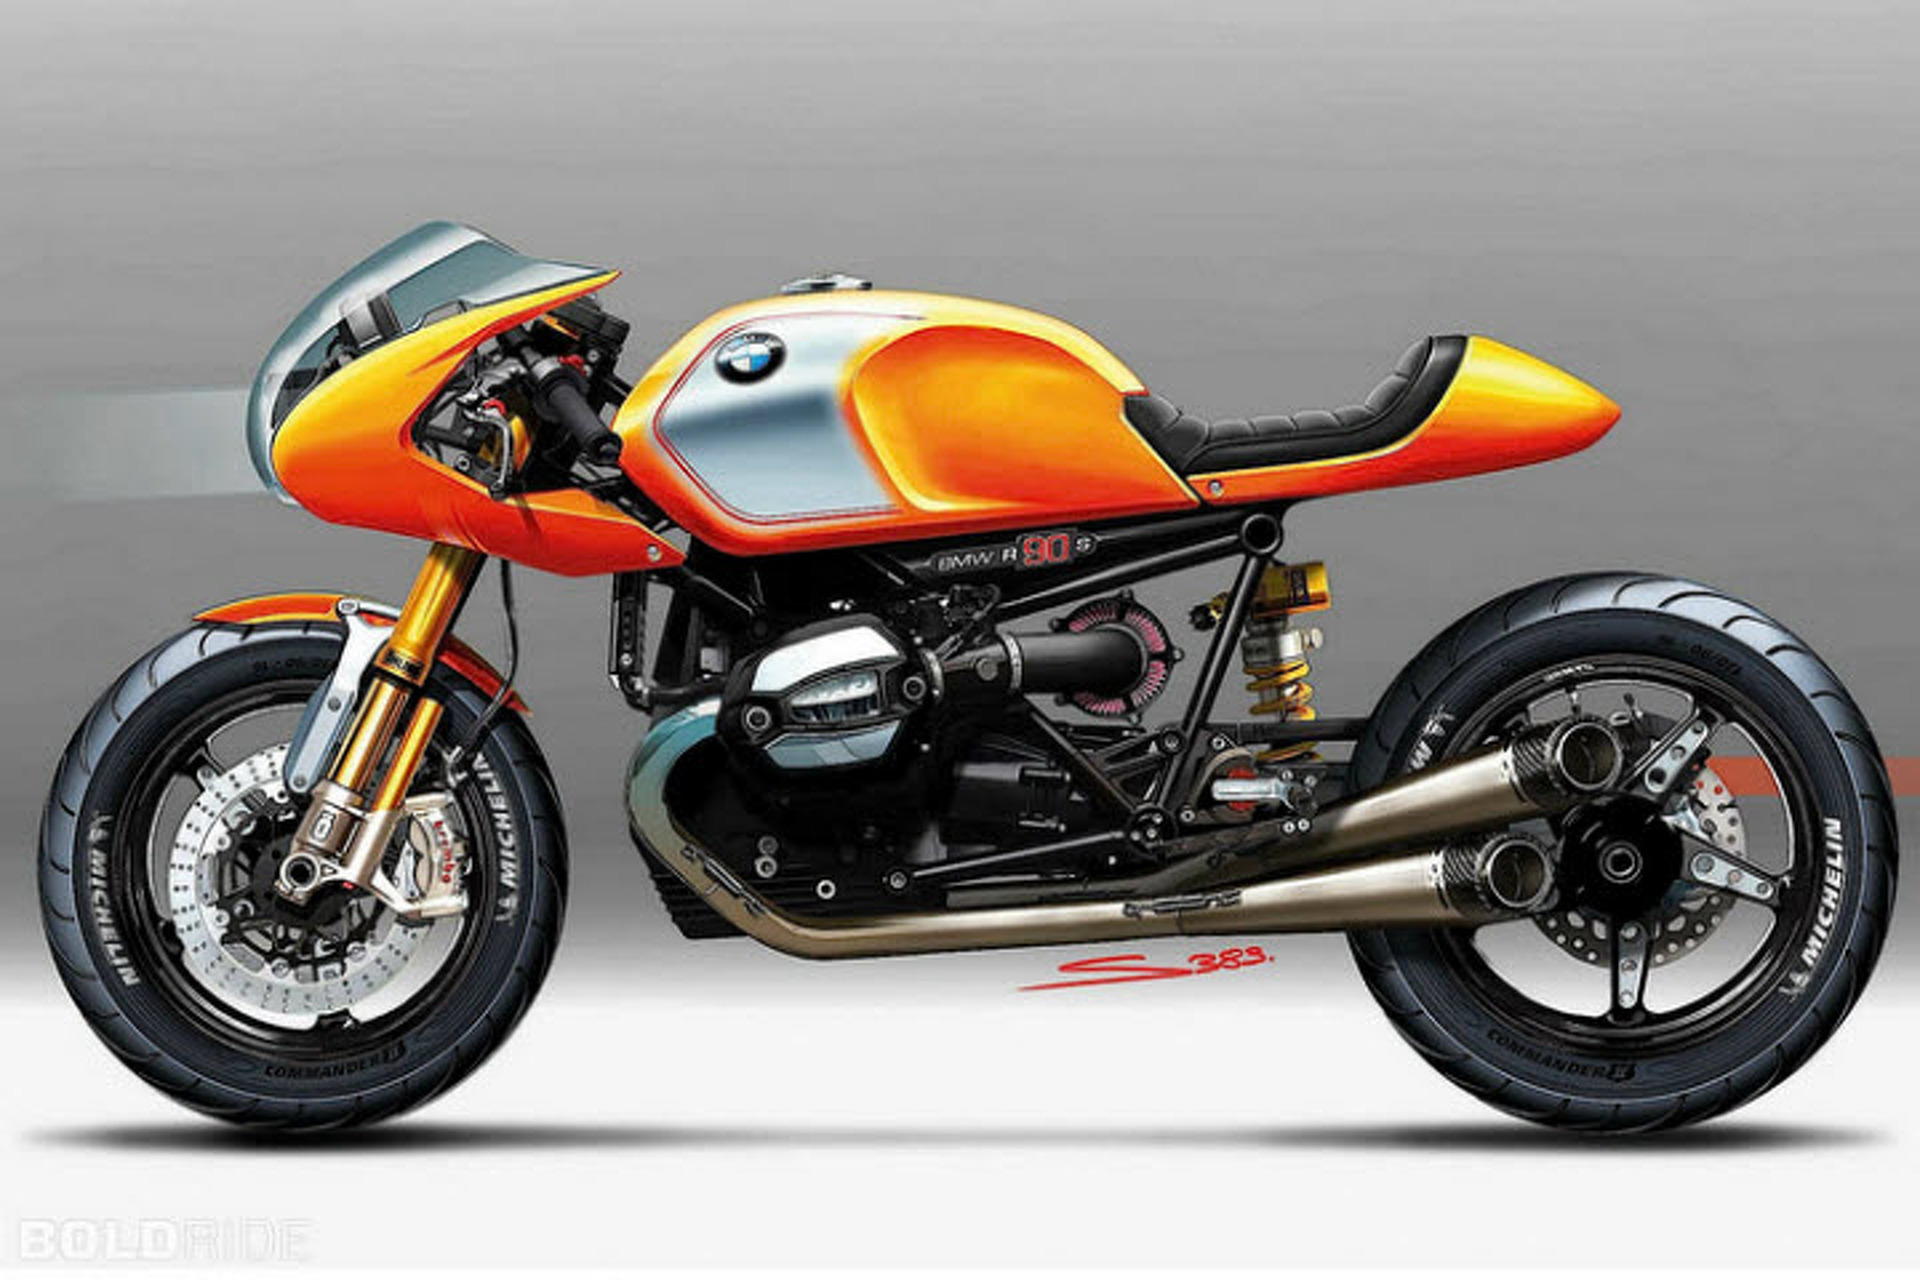 The Want Files: The BMW Concept Ninety